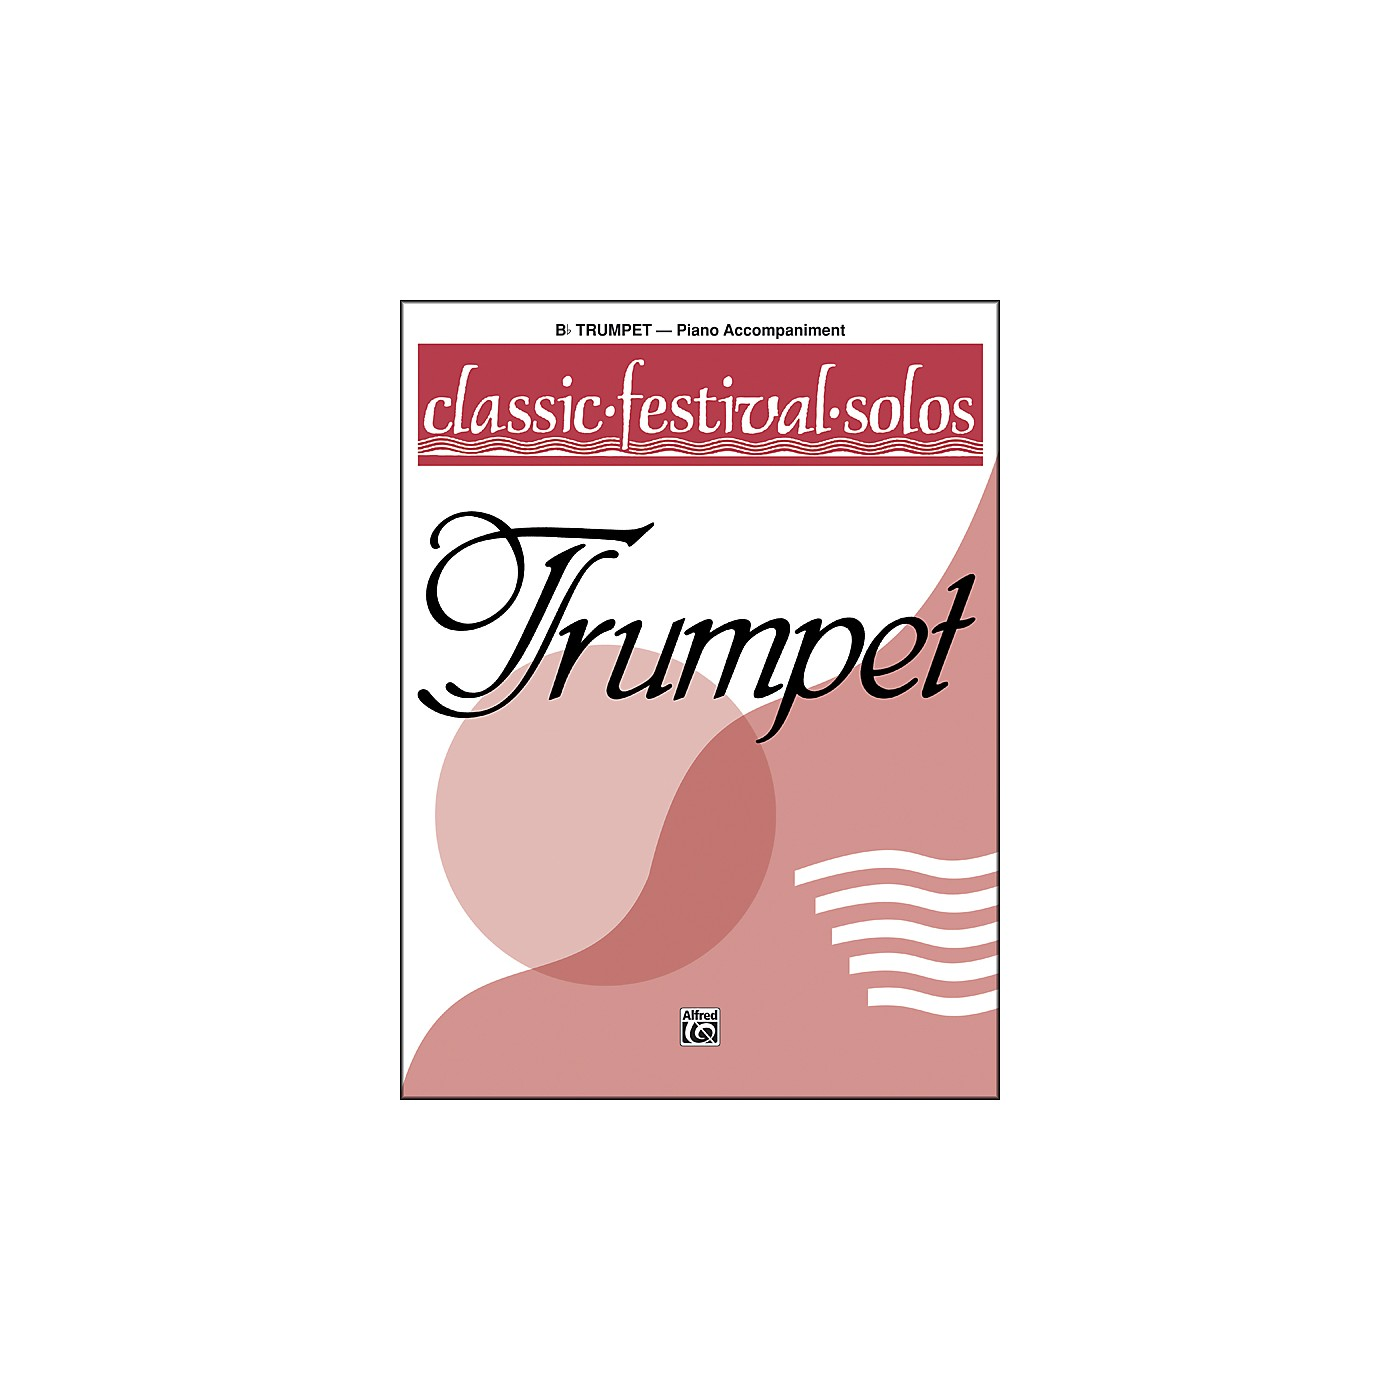 Alfred Classic Festival Solos (B-Flat Trumpet) Volume 1 Piano Acc. thumbnail